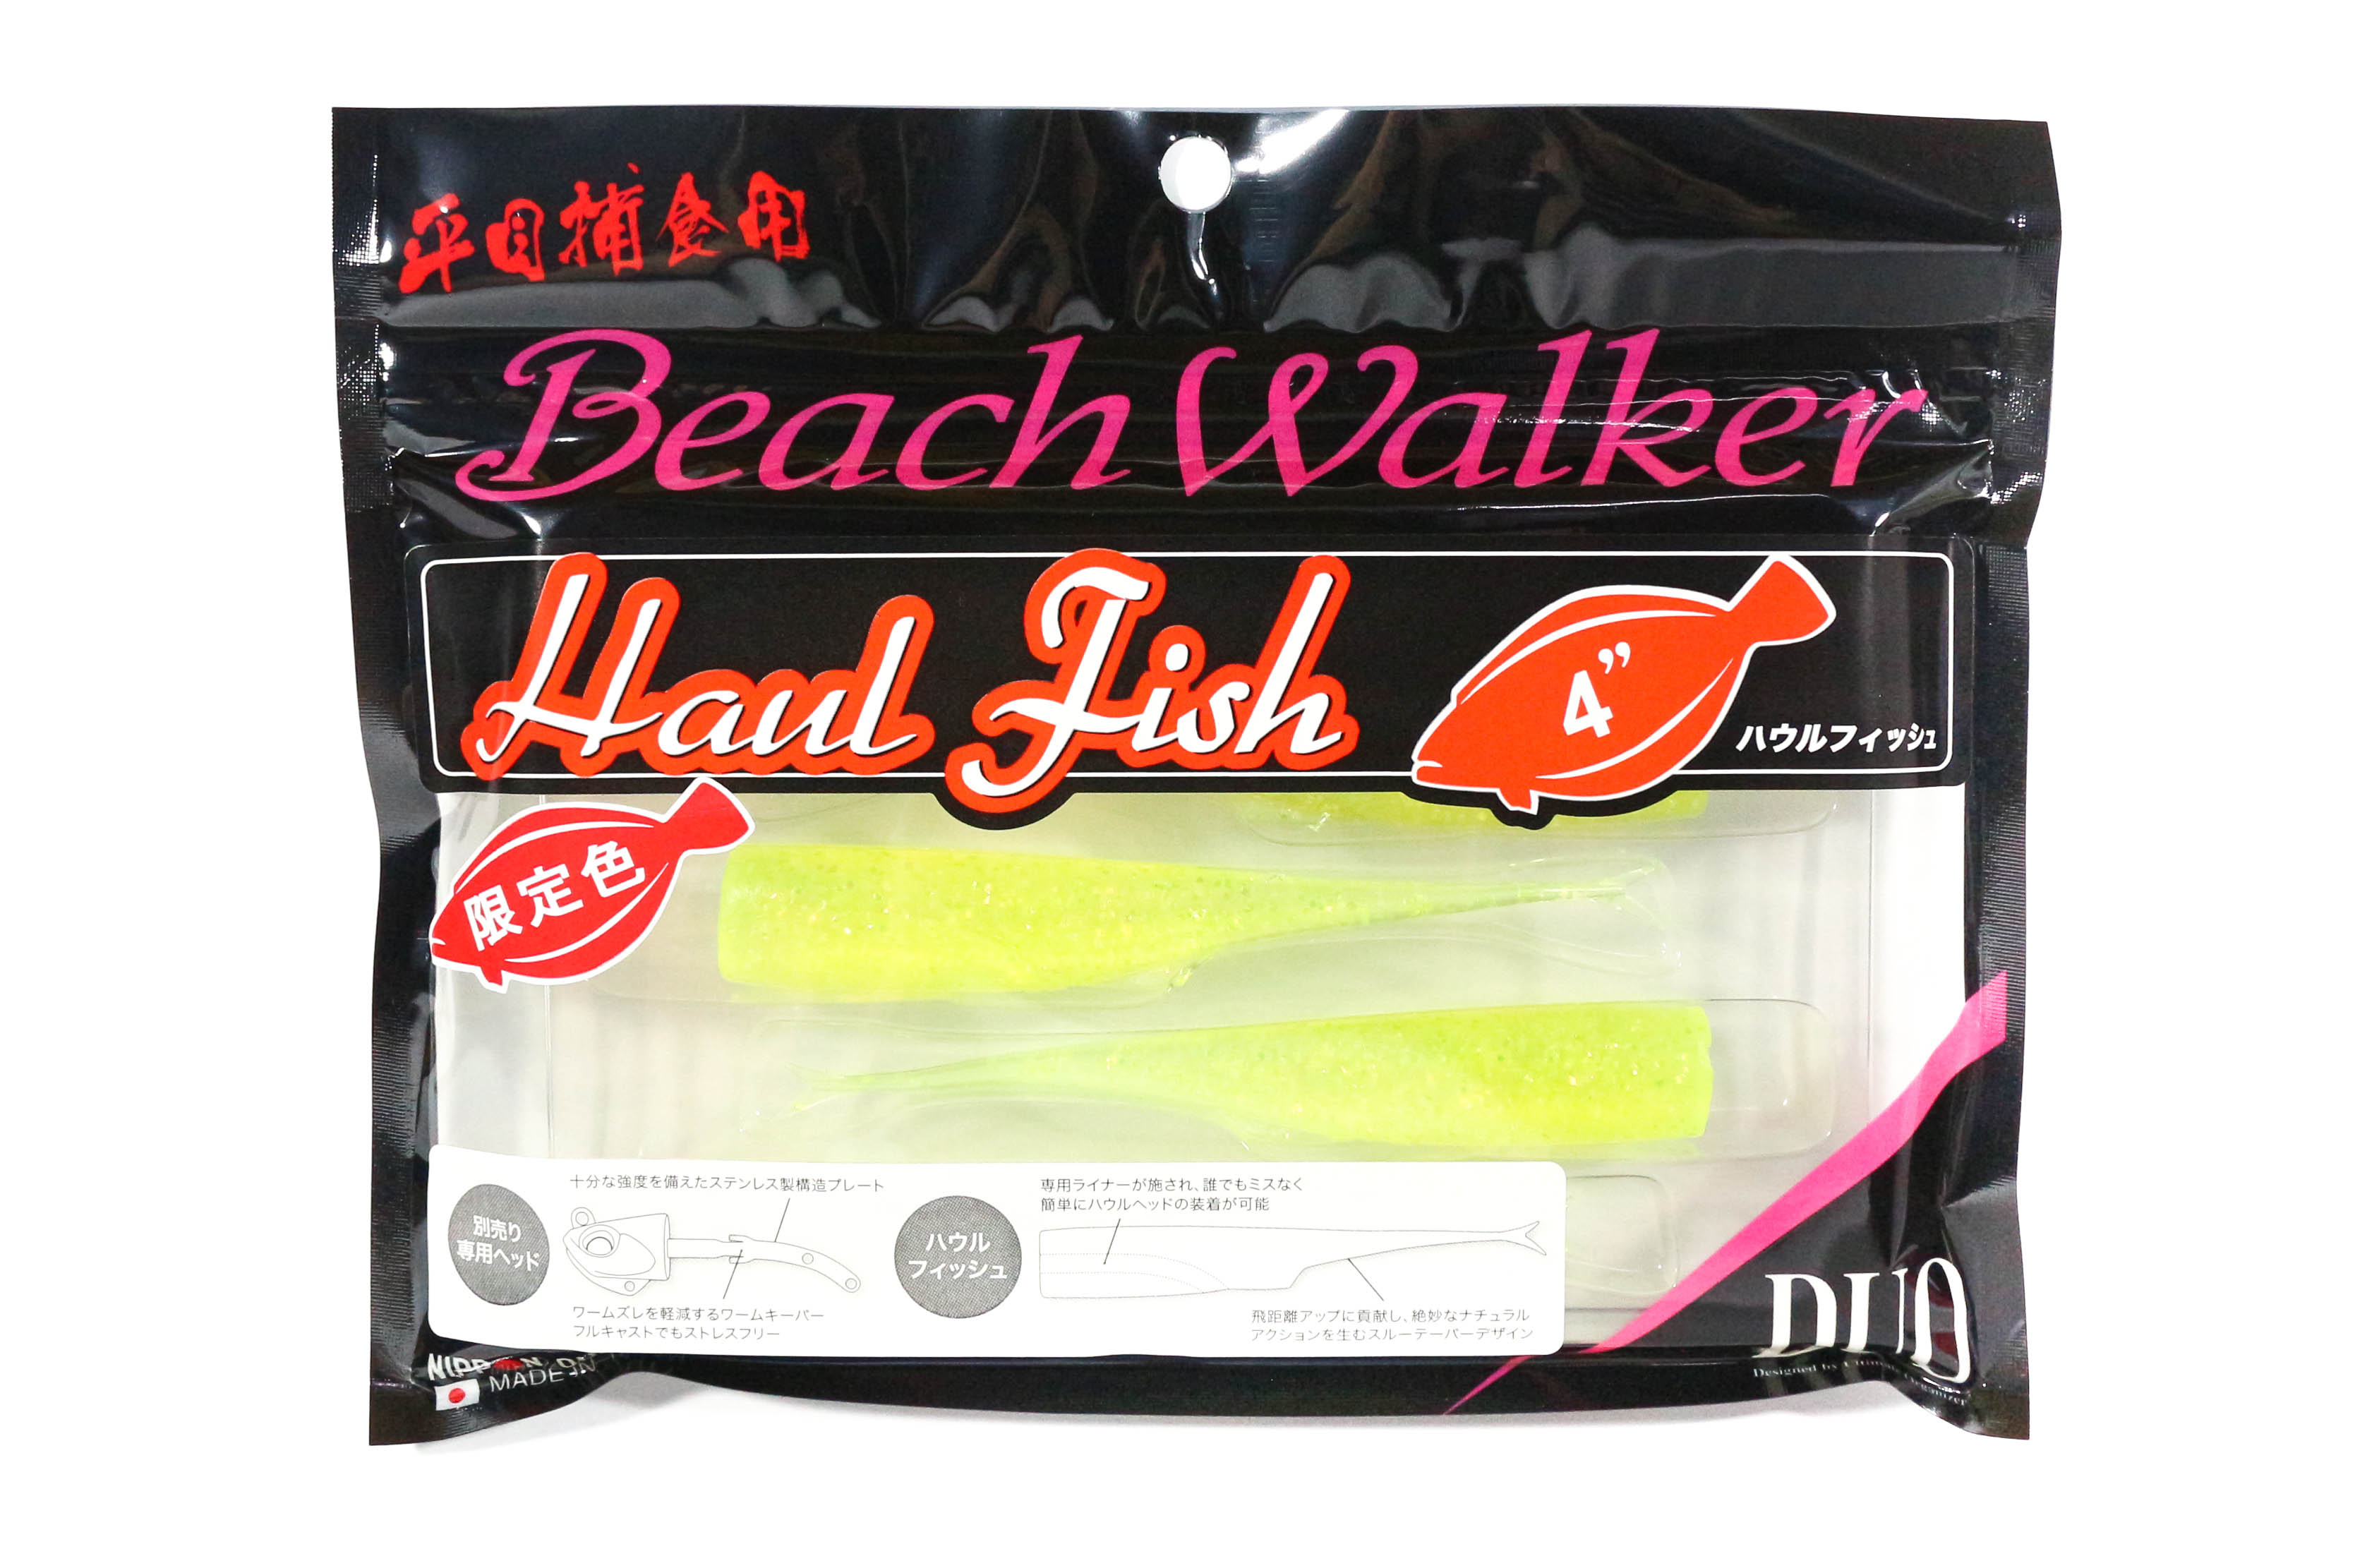 Duo Beach Walker Soft Plastic Haul Fish 4 Inches S906 (4202)